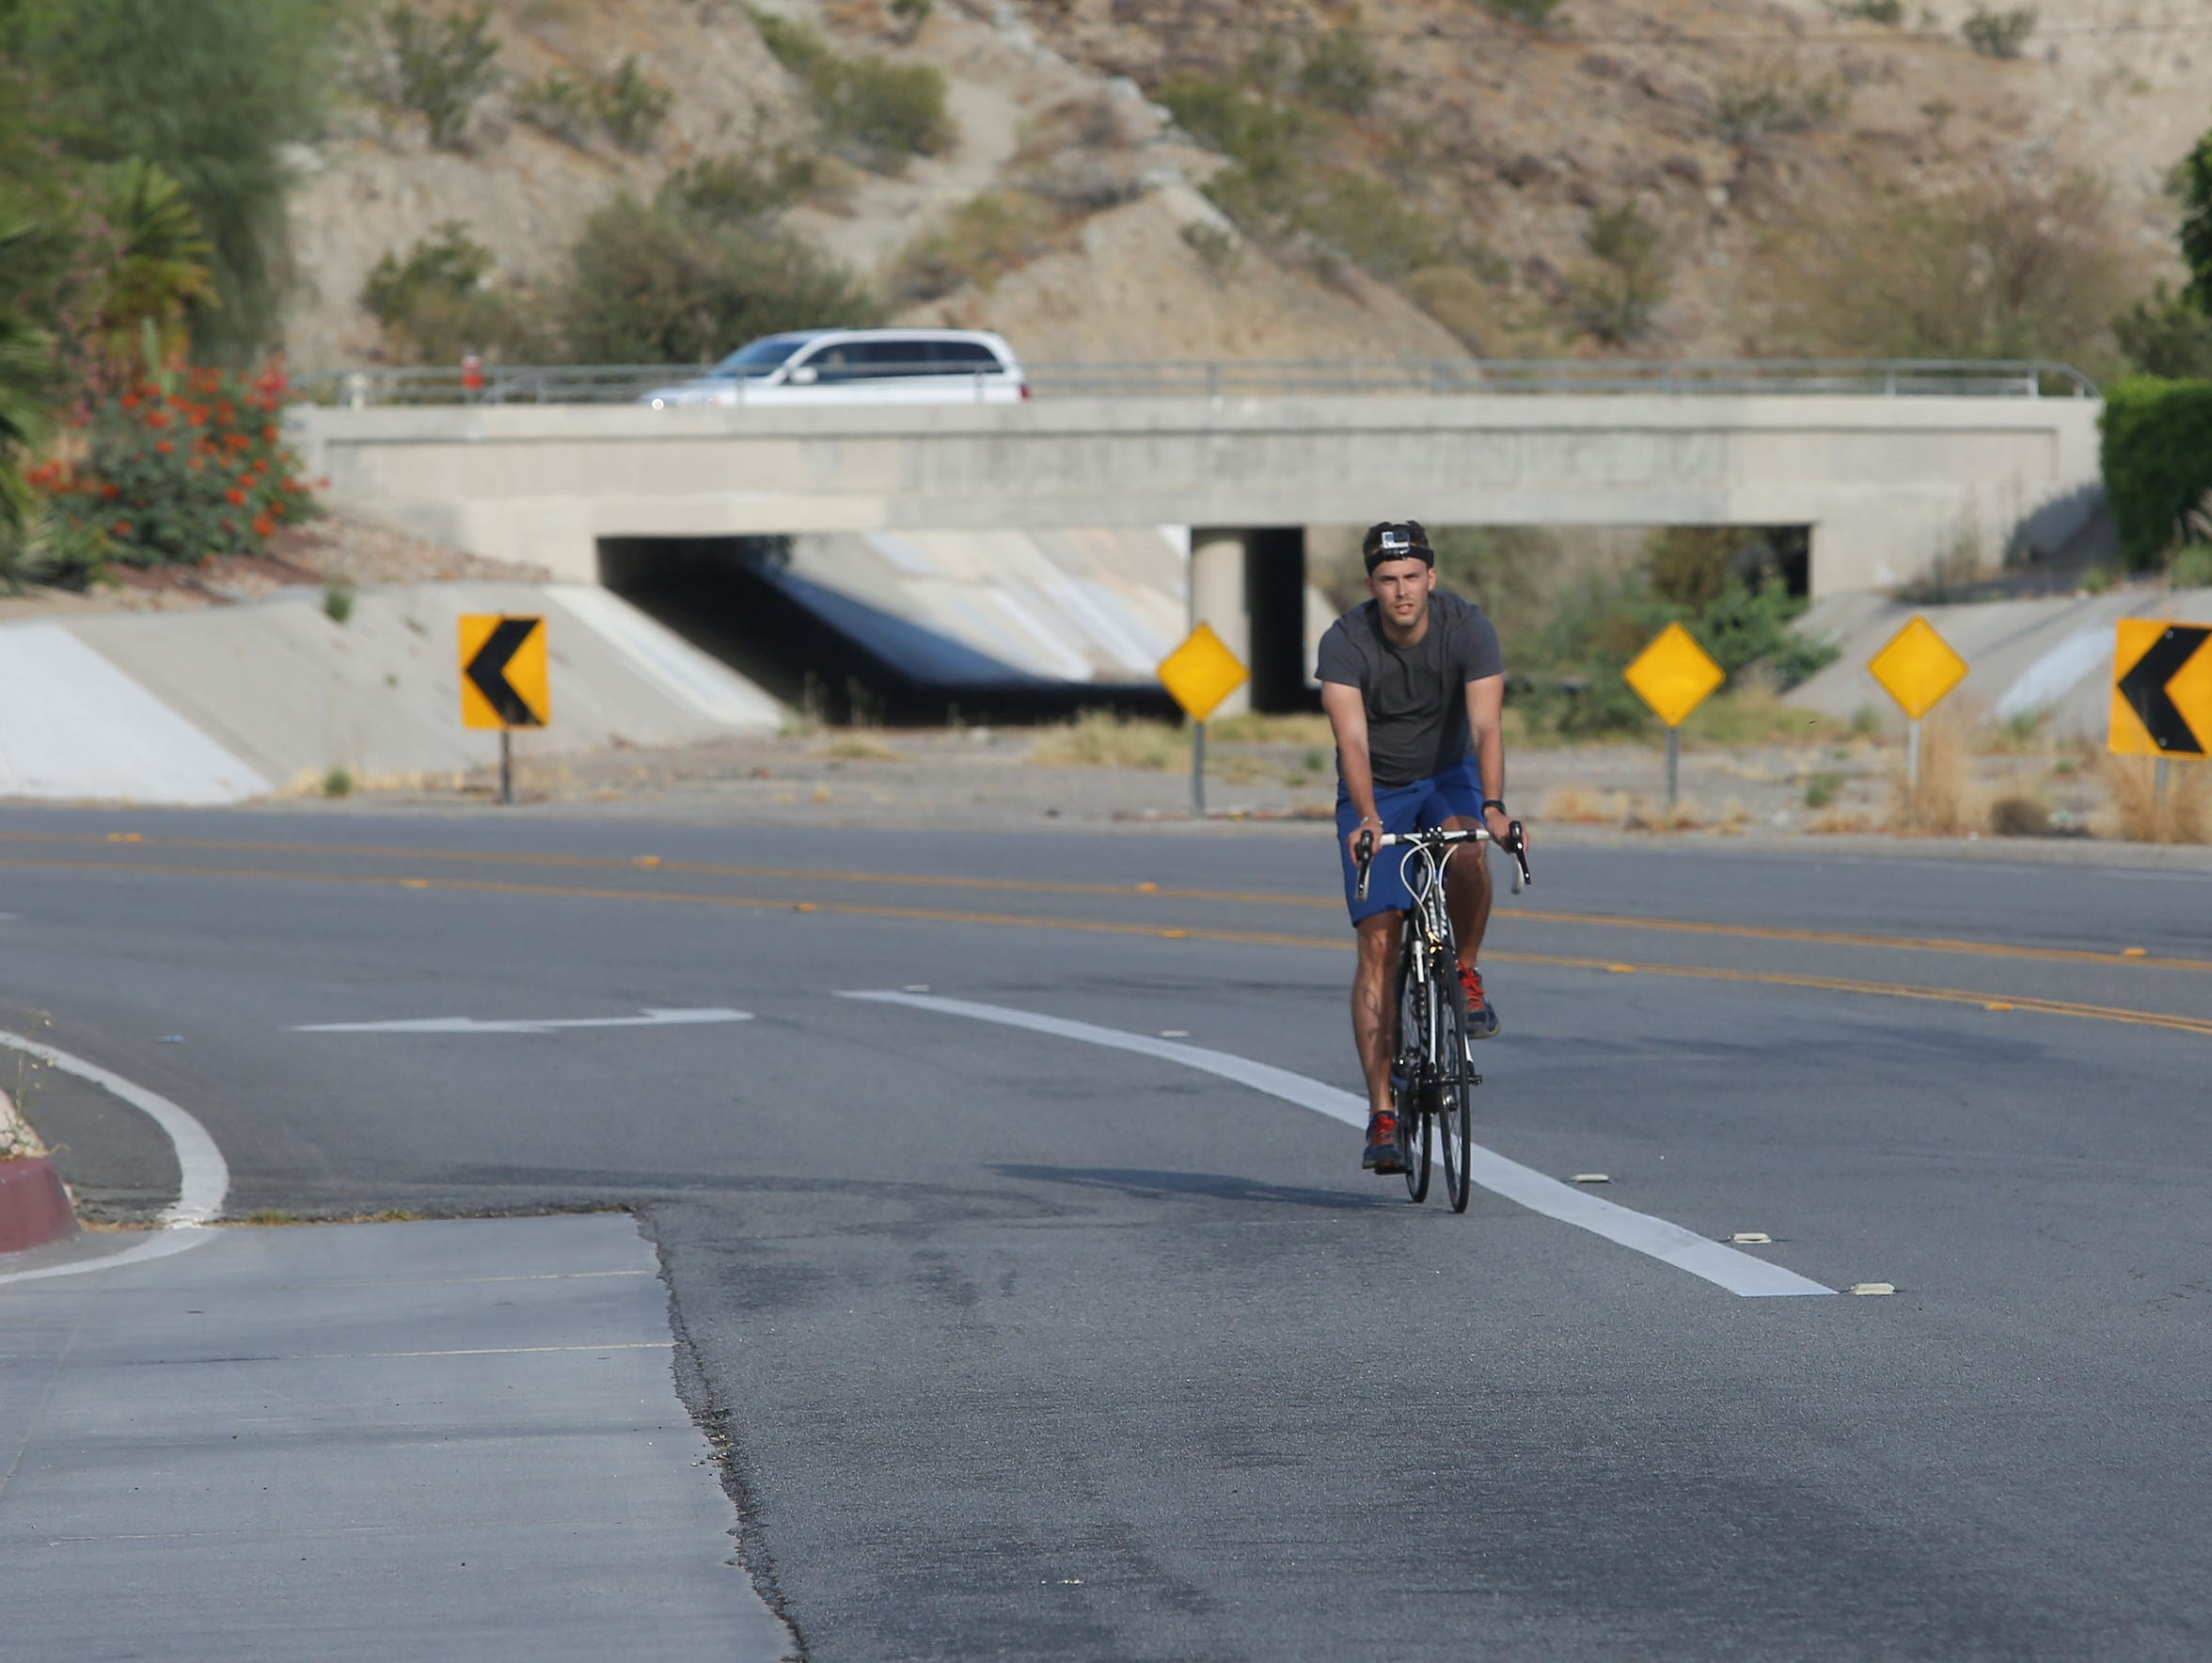 A cyclist rides on the planned path of the CV Link on Parkview Drive in Palm Desert.